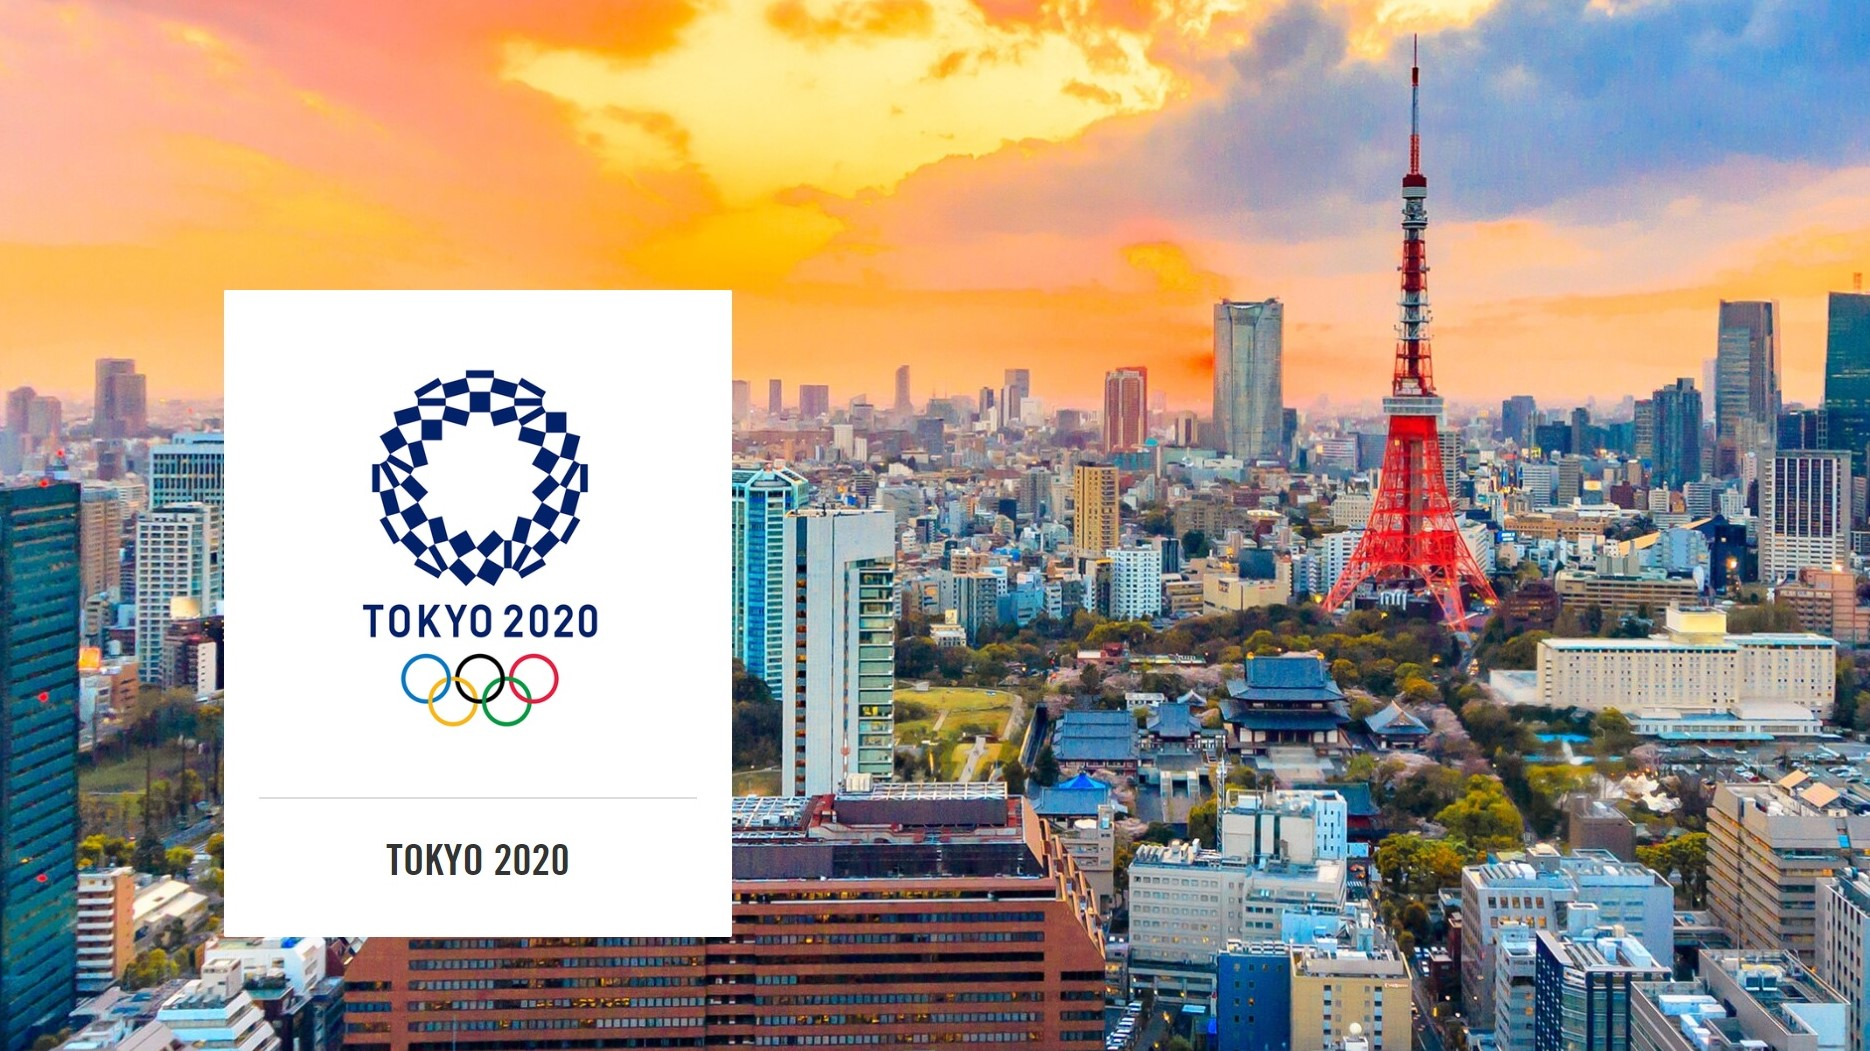 False start: the Tokyo Olympics dates shift to 2021 due to coronavirus concerns